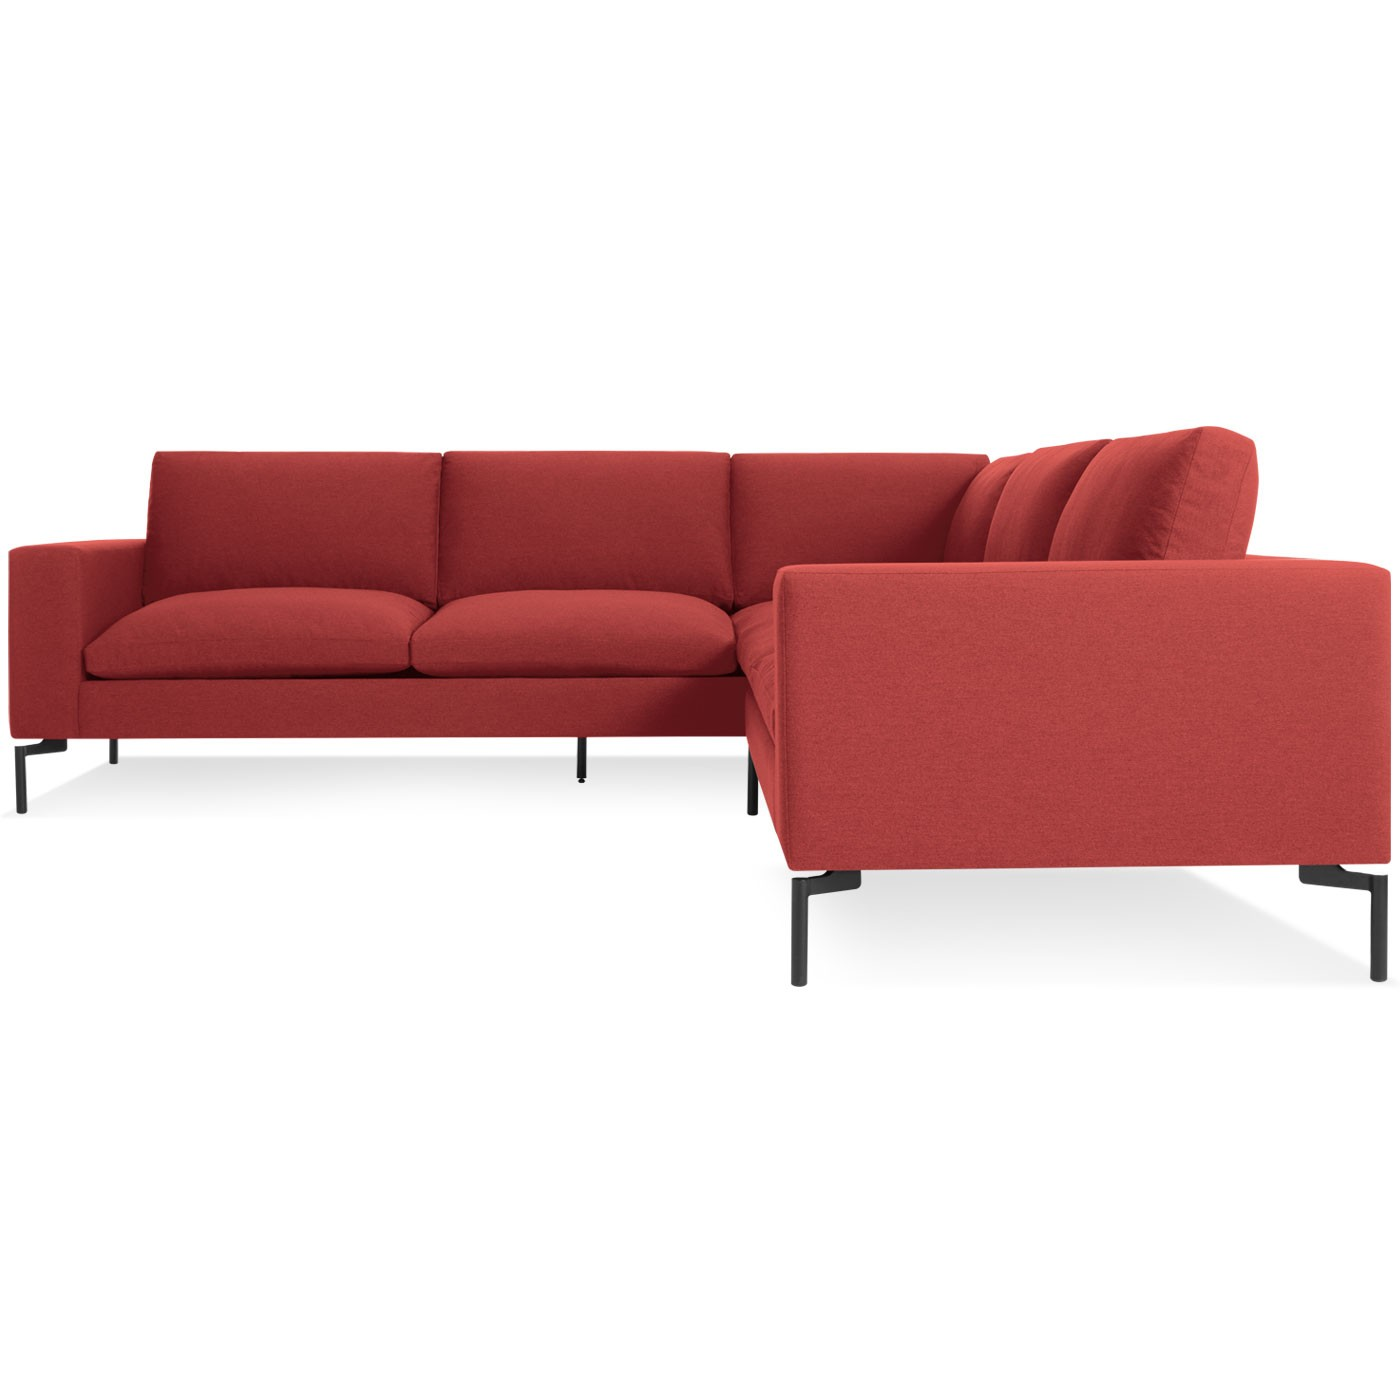 When Should You Get A Sectional Sofa Vs A Regular Sofa